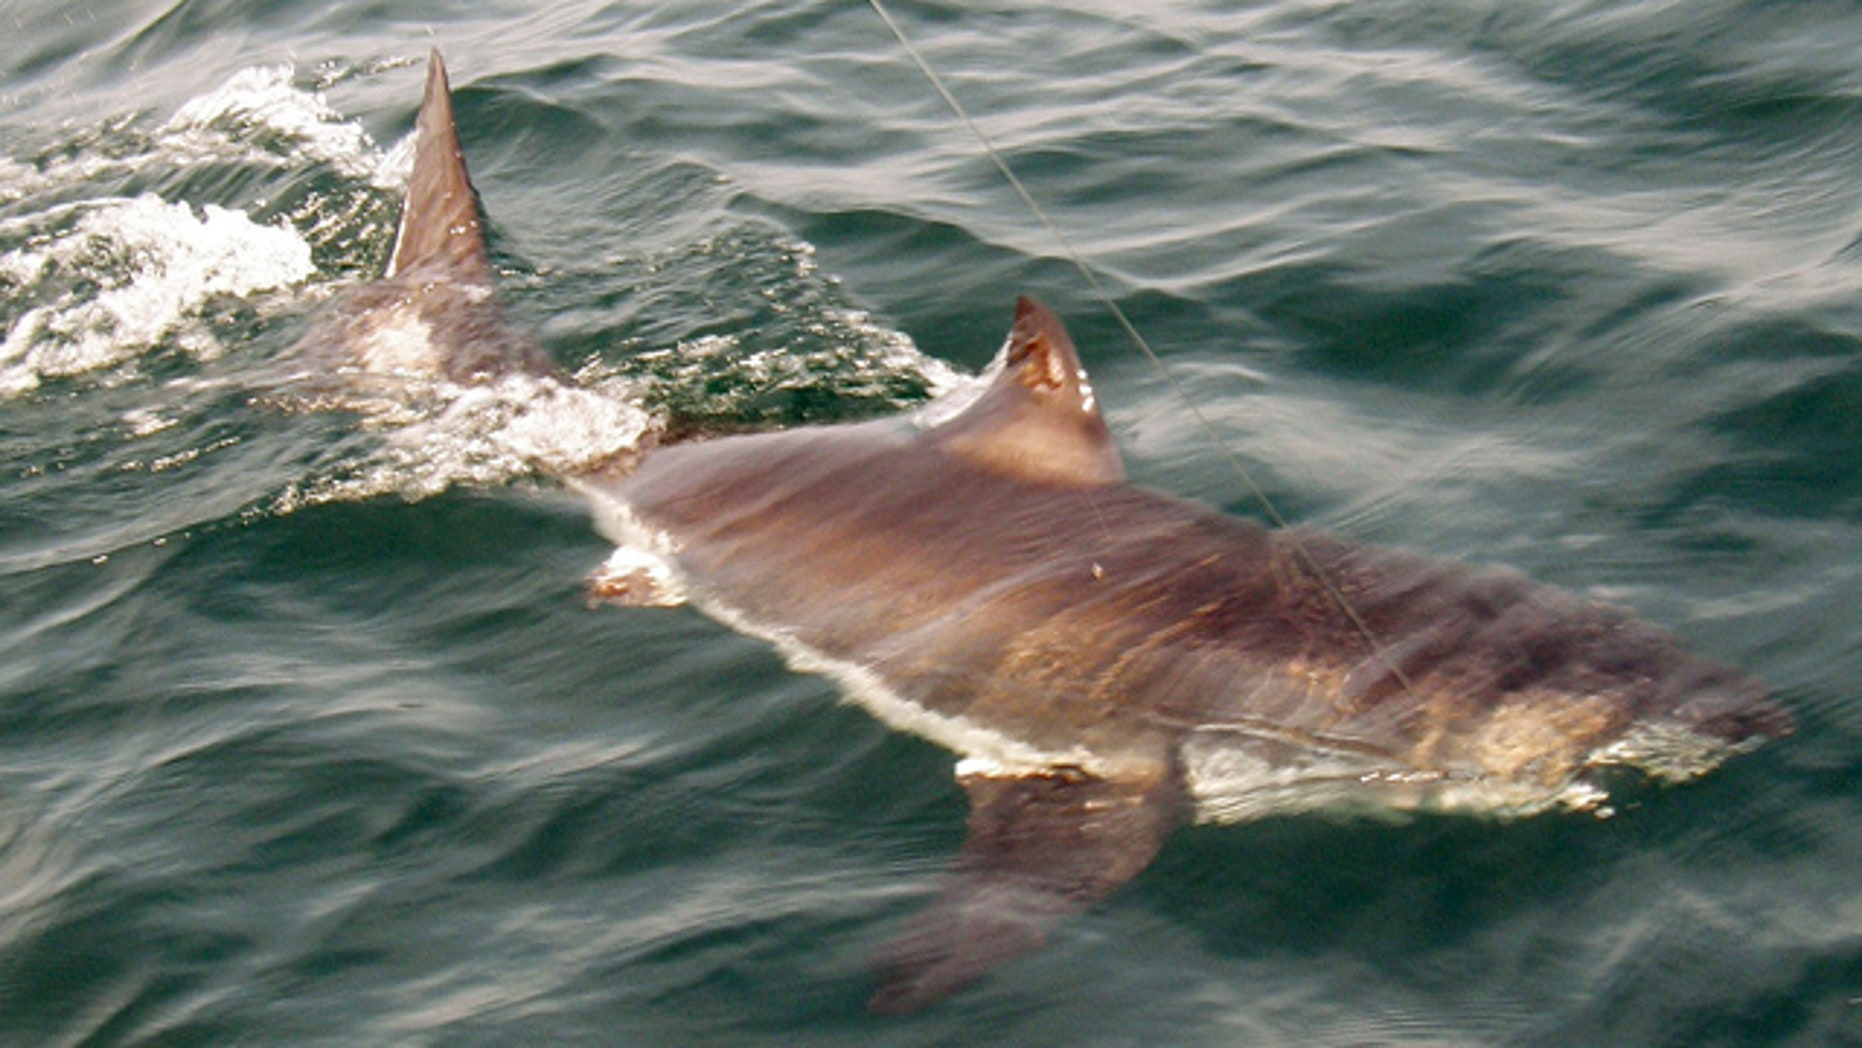 June 26: A juvenile great white shark swims in the Atlantic Ocean about 20 miles off the coast of Gloucester, Mass., in the rich fishing ground known as Stellwagen Bank. The shark was pulled up by Gloucester-based Sweet Dream III, tagged, and returned to the sea.